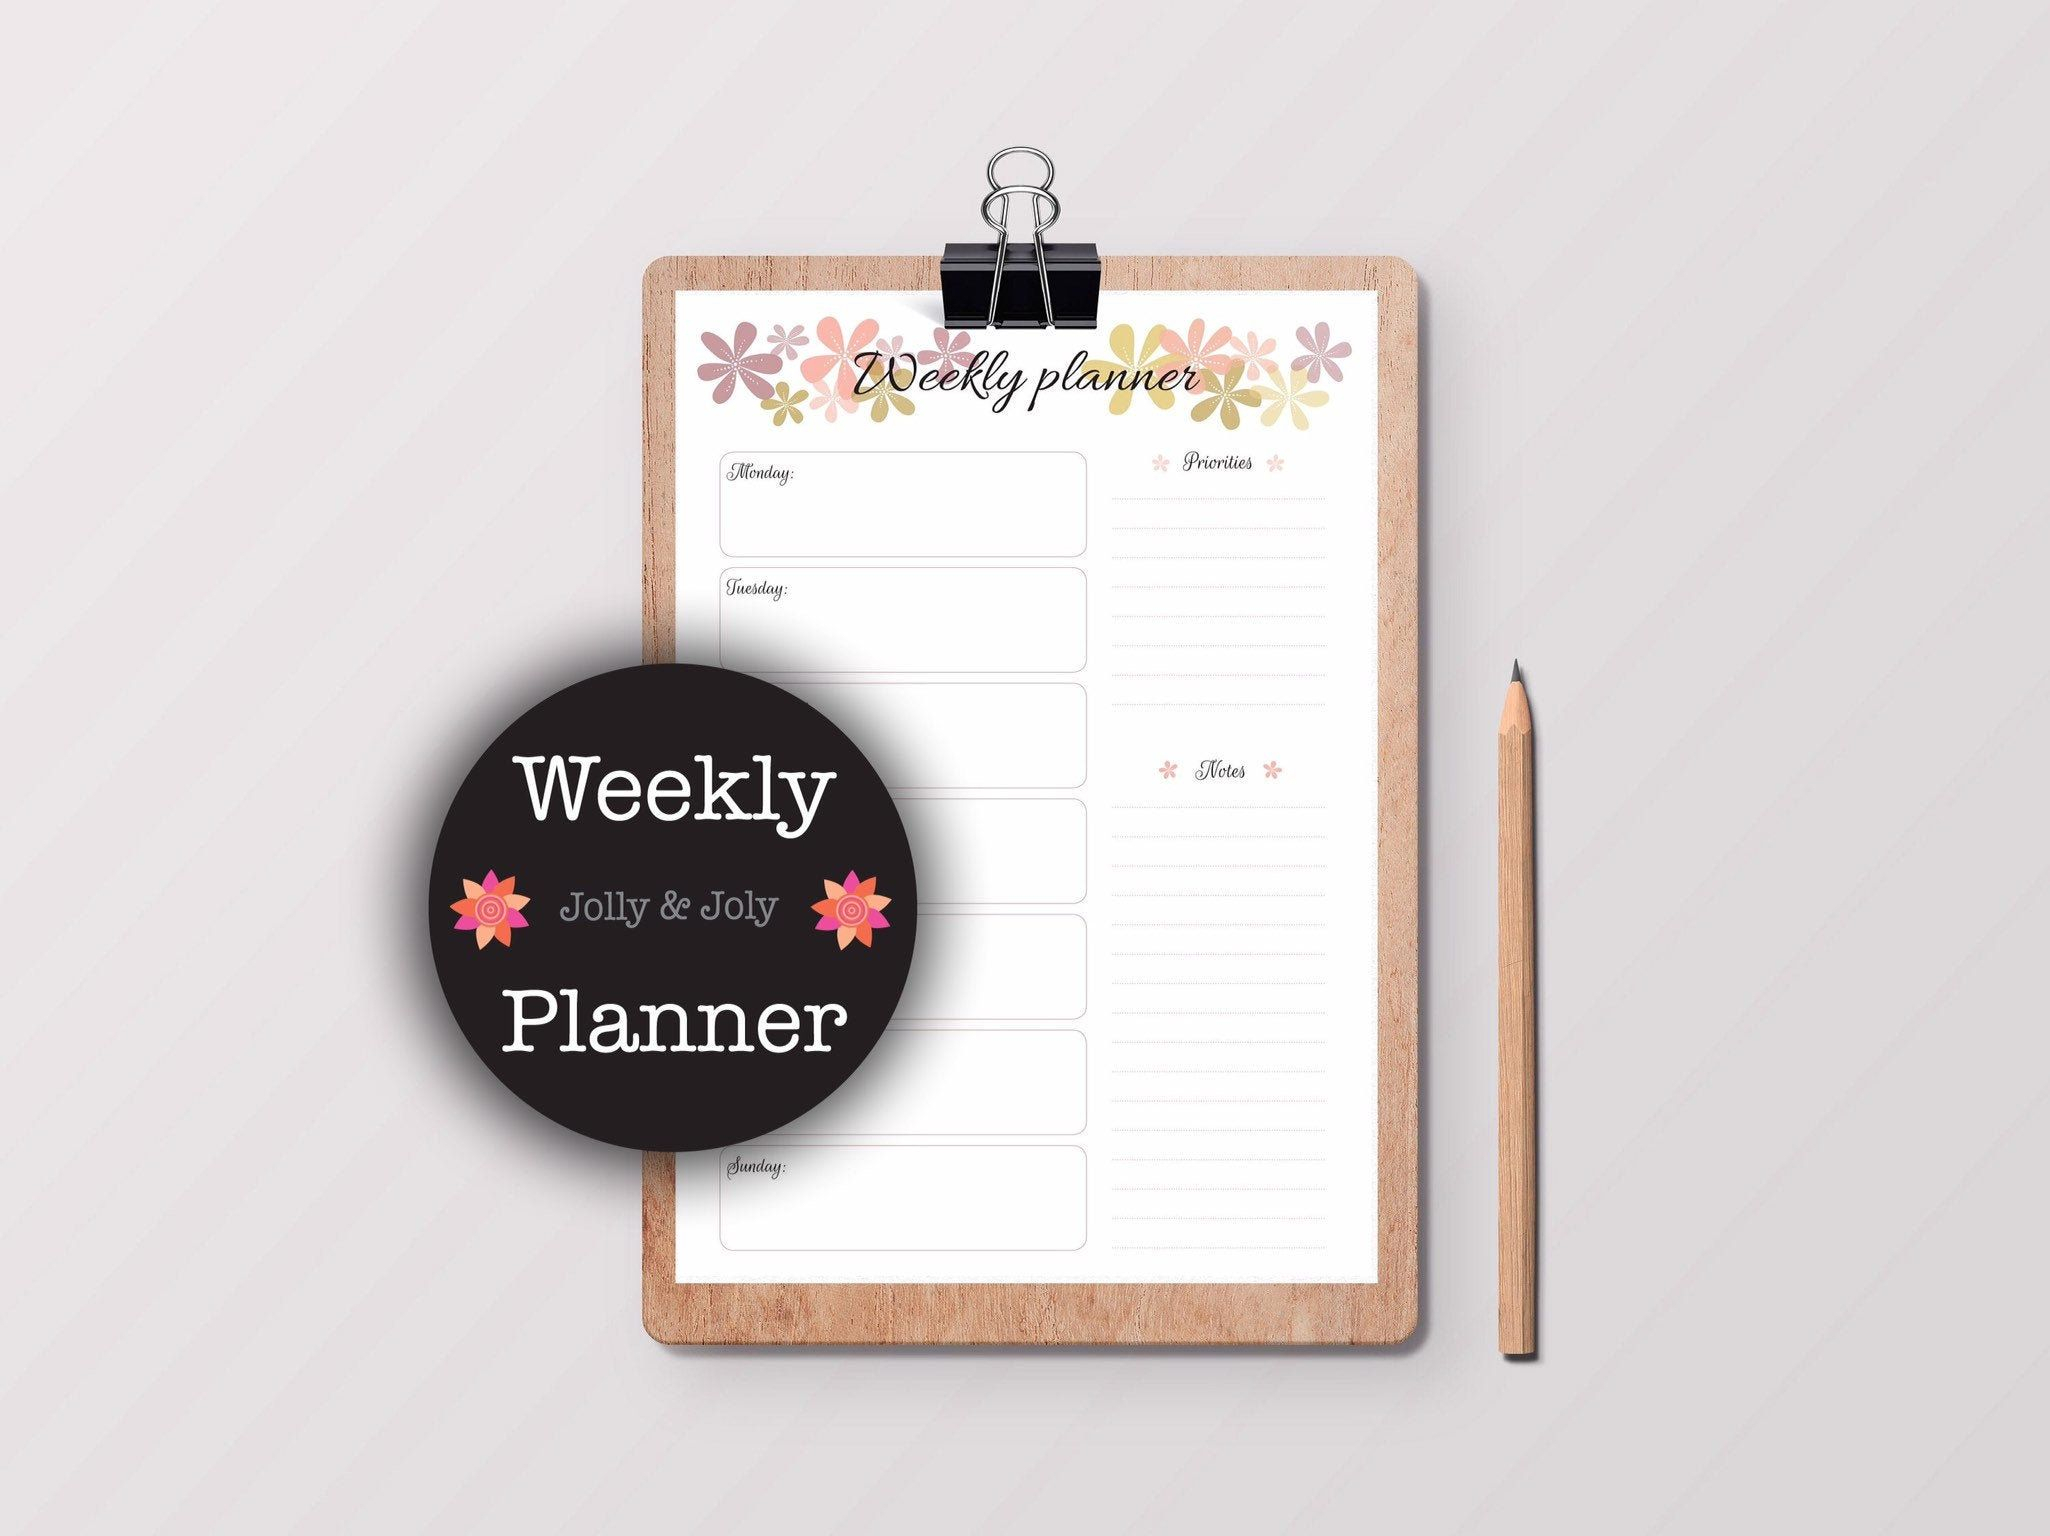 Printable Weekly Floral Planner 7 Days A Week Schedule regarding 7 Days A Week Planner